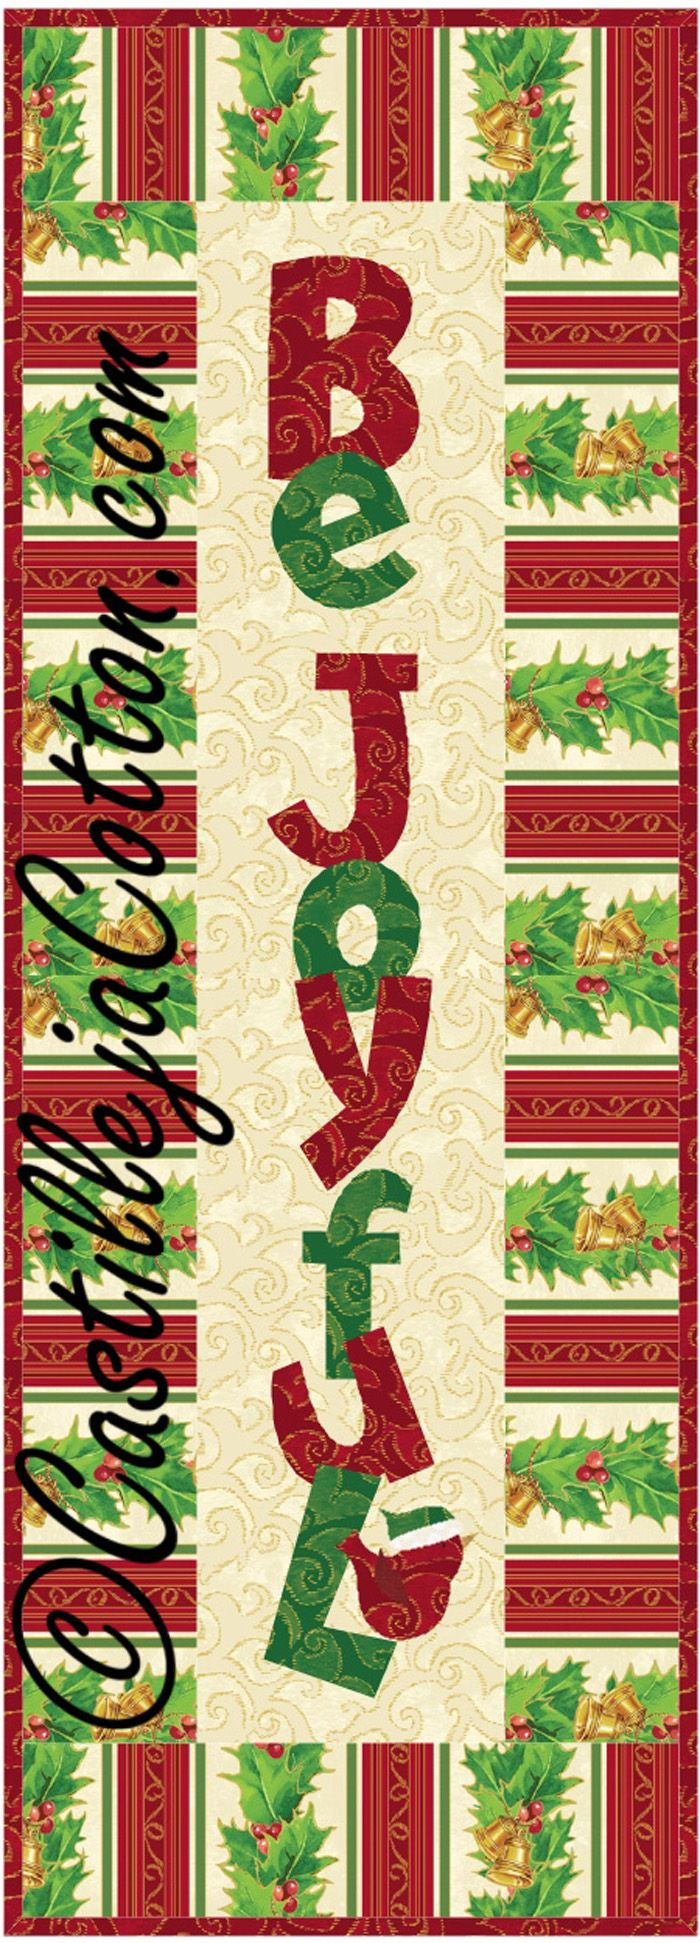 Be Joyful Quilt Pattern CJC-48023 (advanced beginner, wall hanging ...